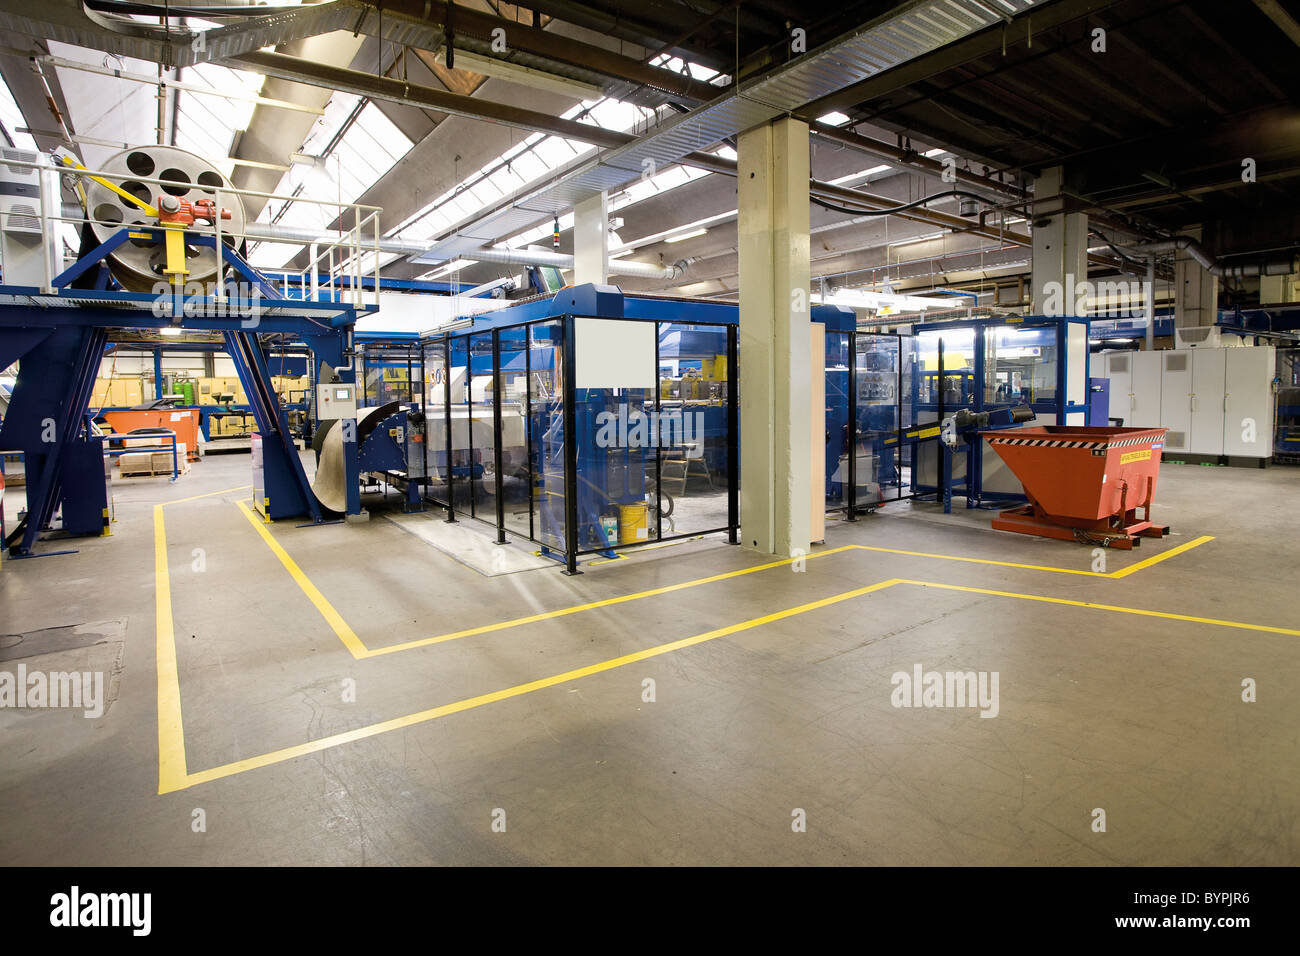 Carpet factory, pedestrian walkway and ultrasonic cutting machine - Stock Image